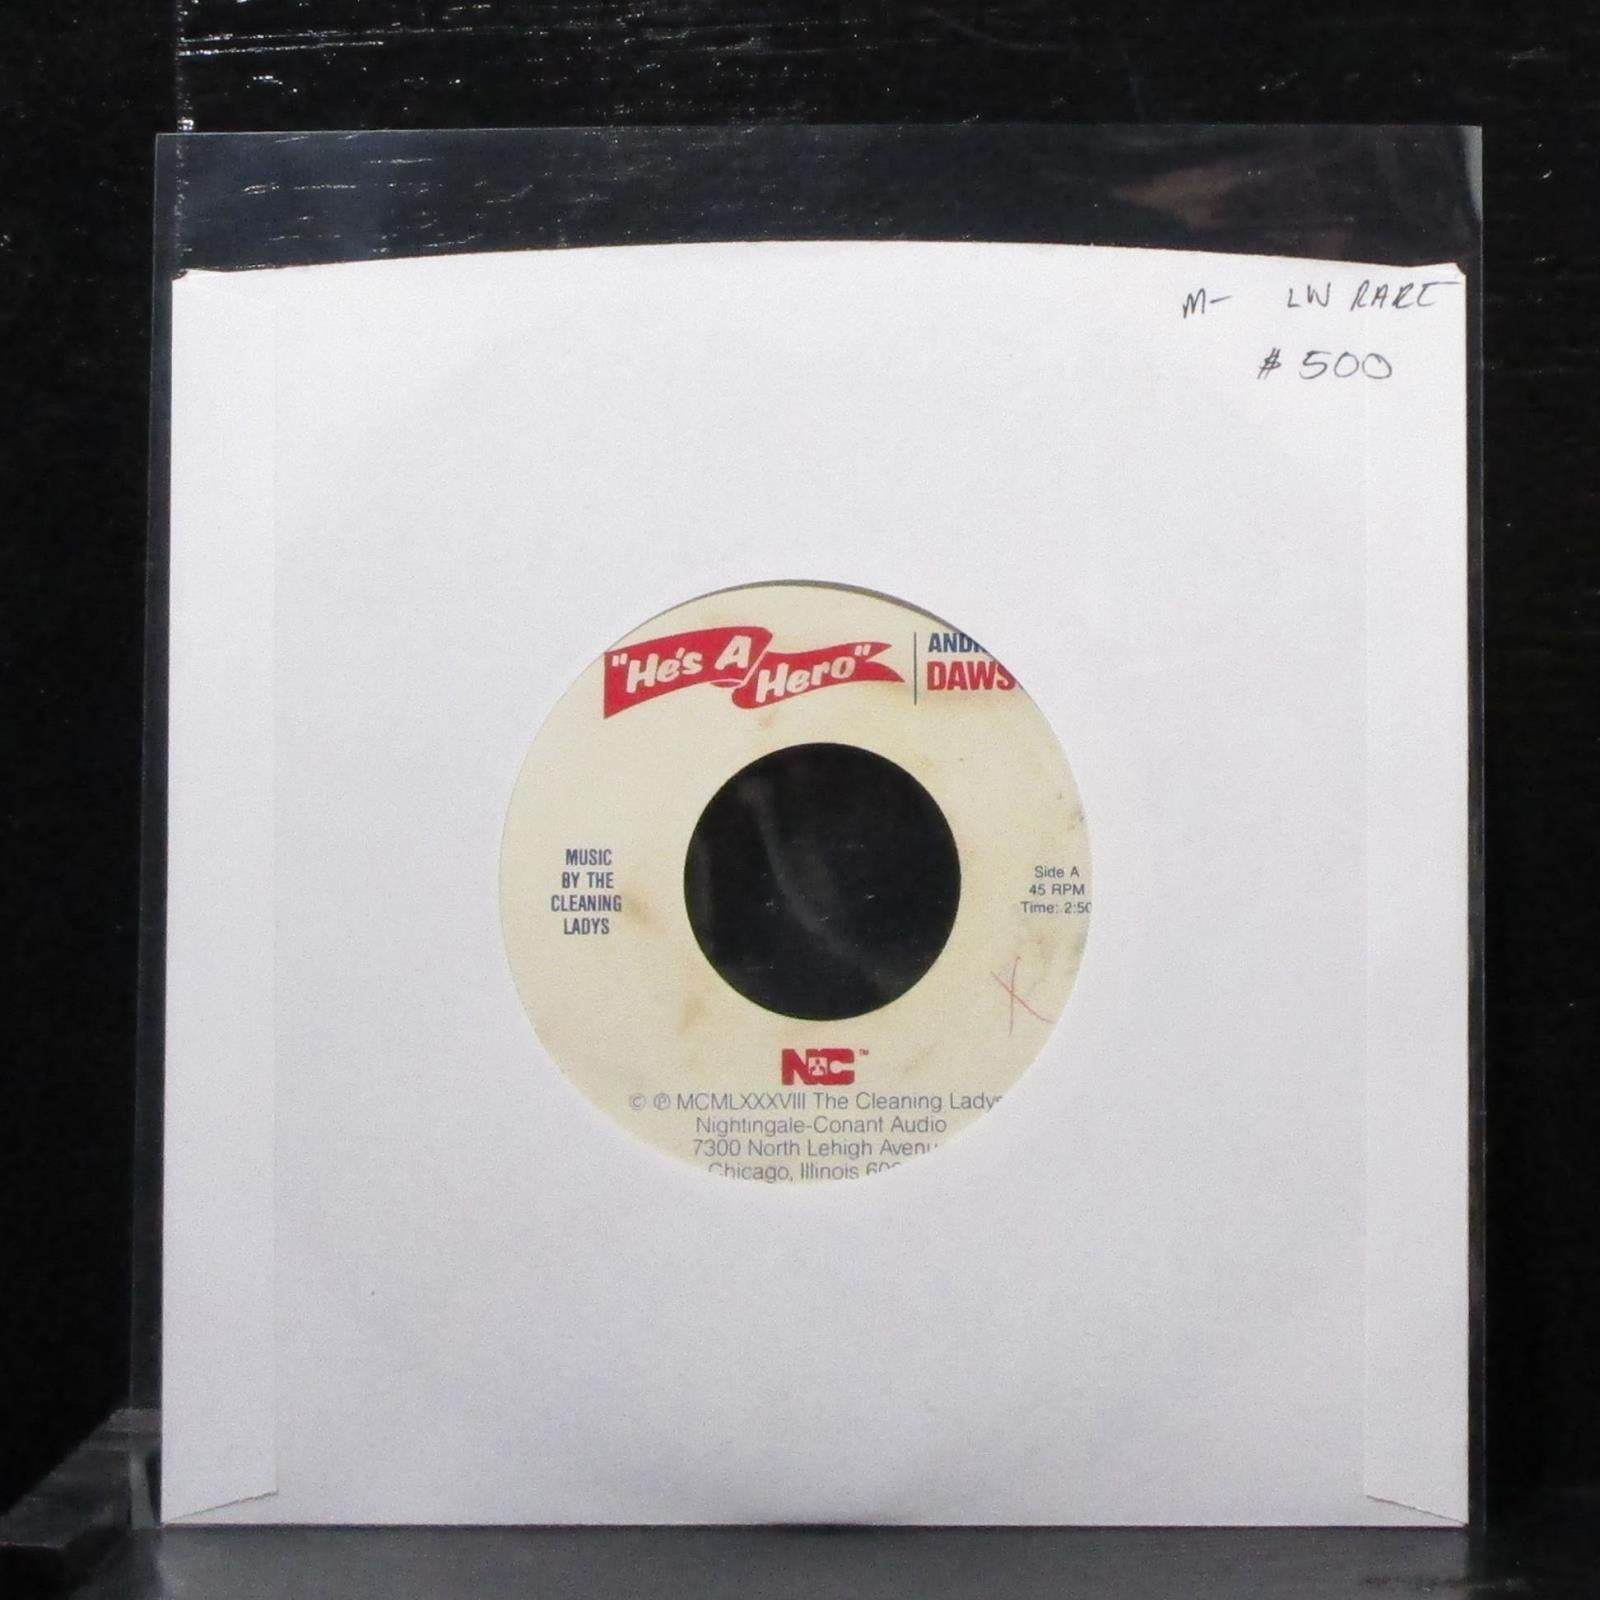 "The Cleaning Ladys - He's A Hero (Andre Dawson) 7"" Mint- Vinyl 45 1988"